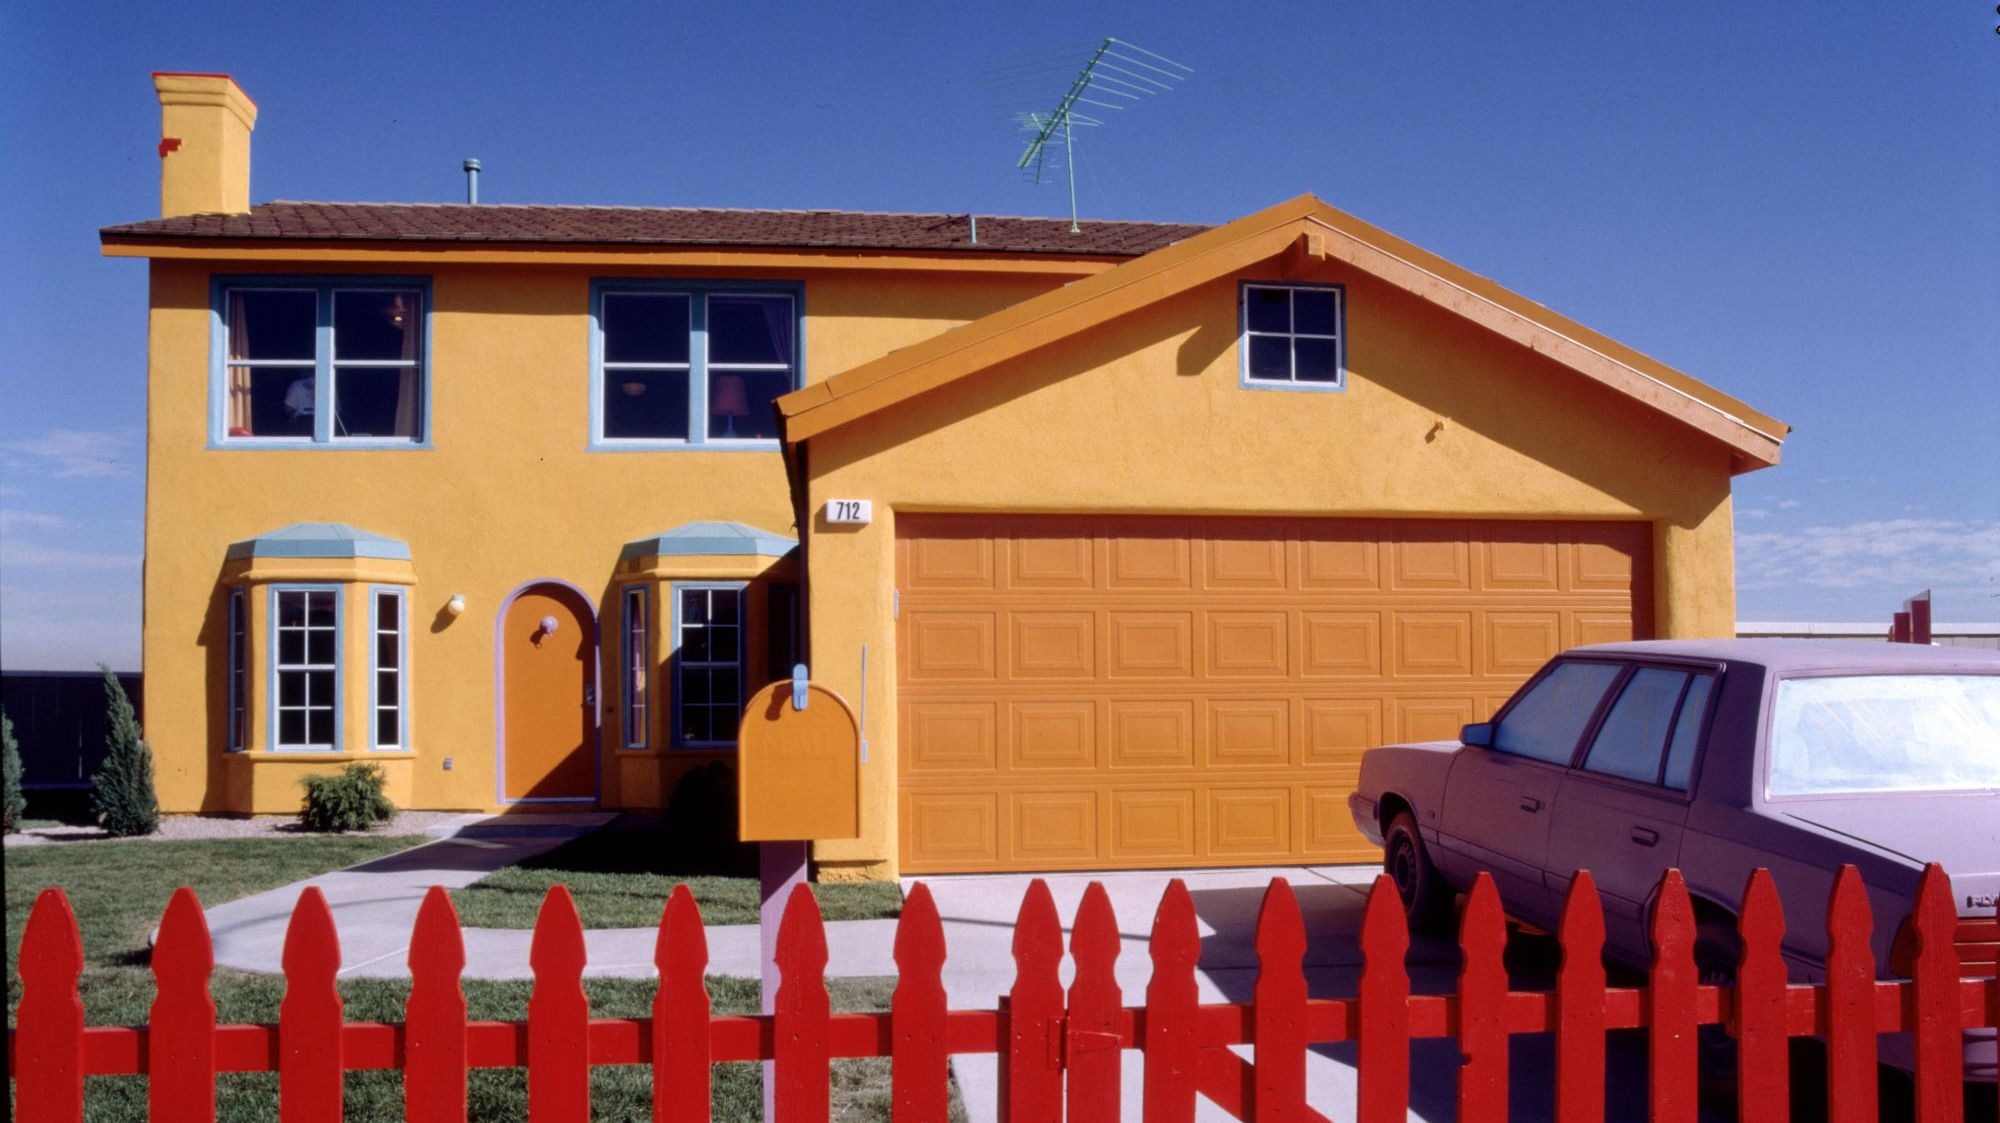 Home Sweet Homer The Strange Saga Of The Real Life Simpsons House In Nevada Mental Floss